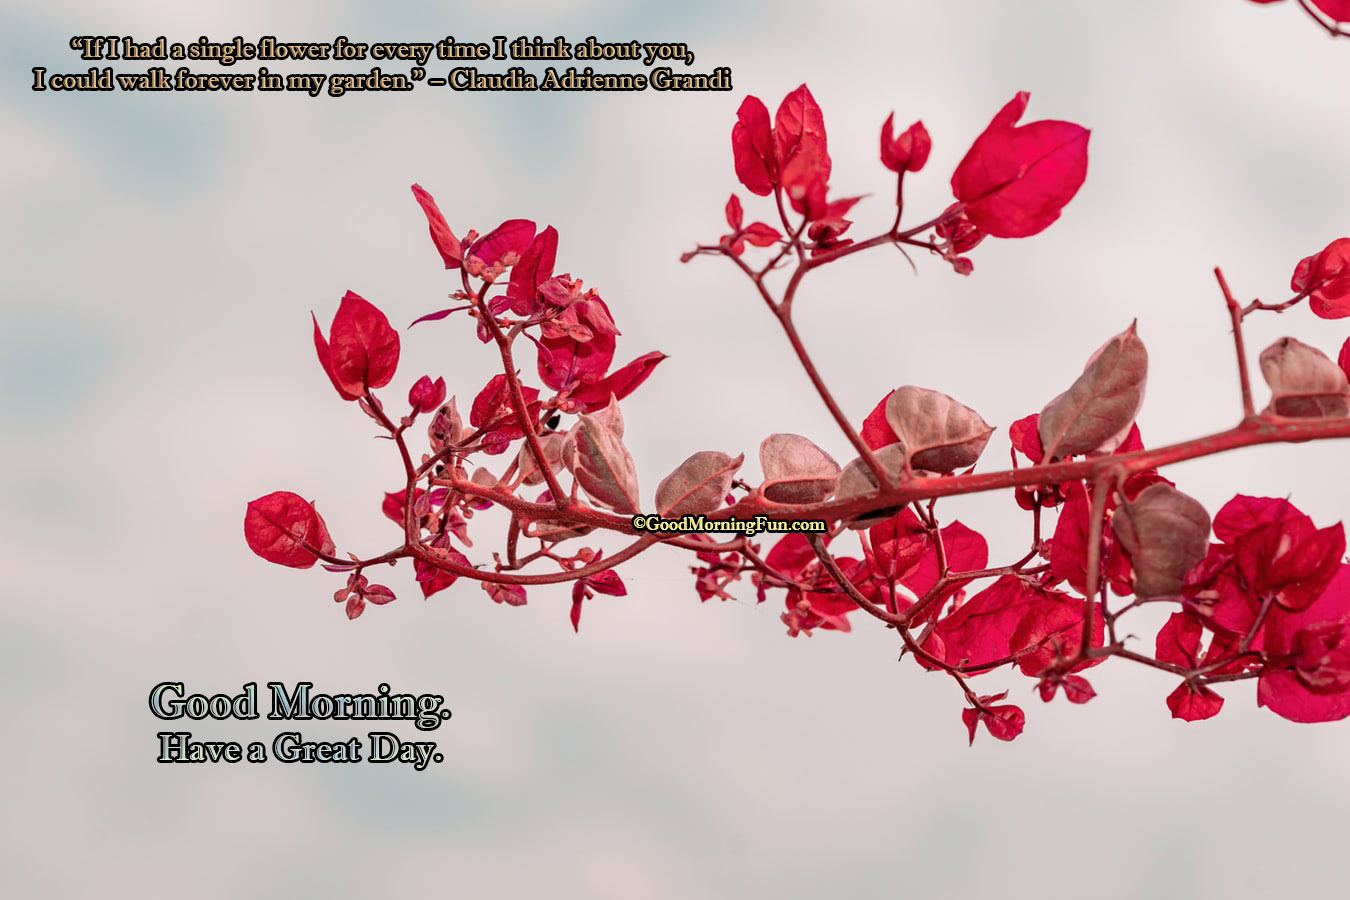 Good Morning With Lovely Flower Quotes Good Morning Fun